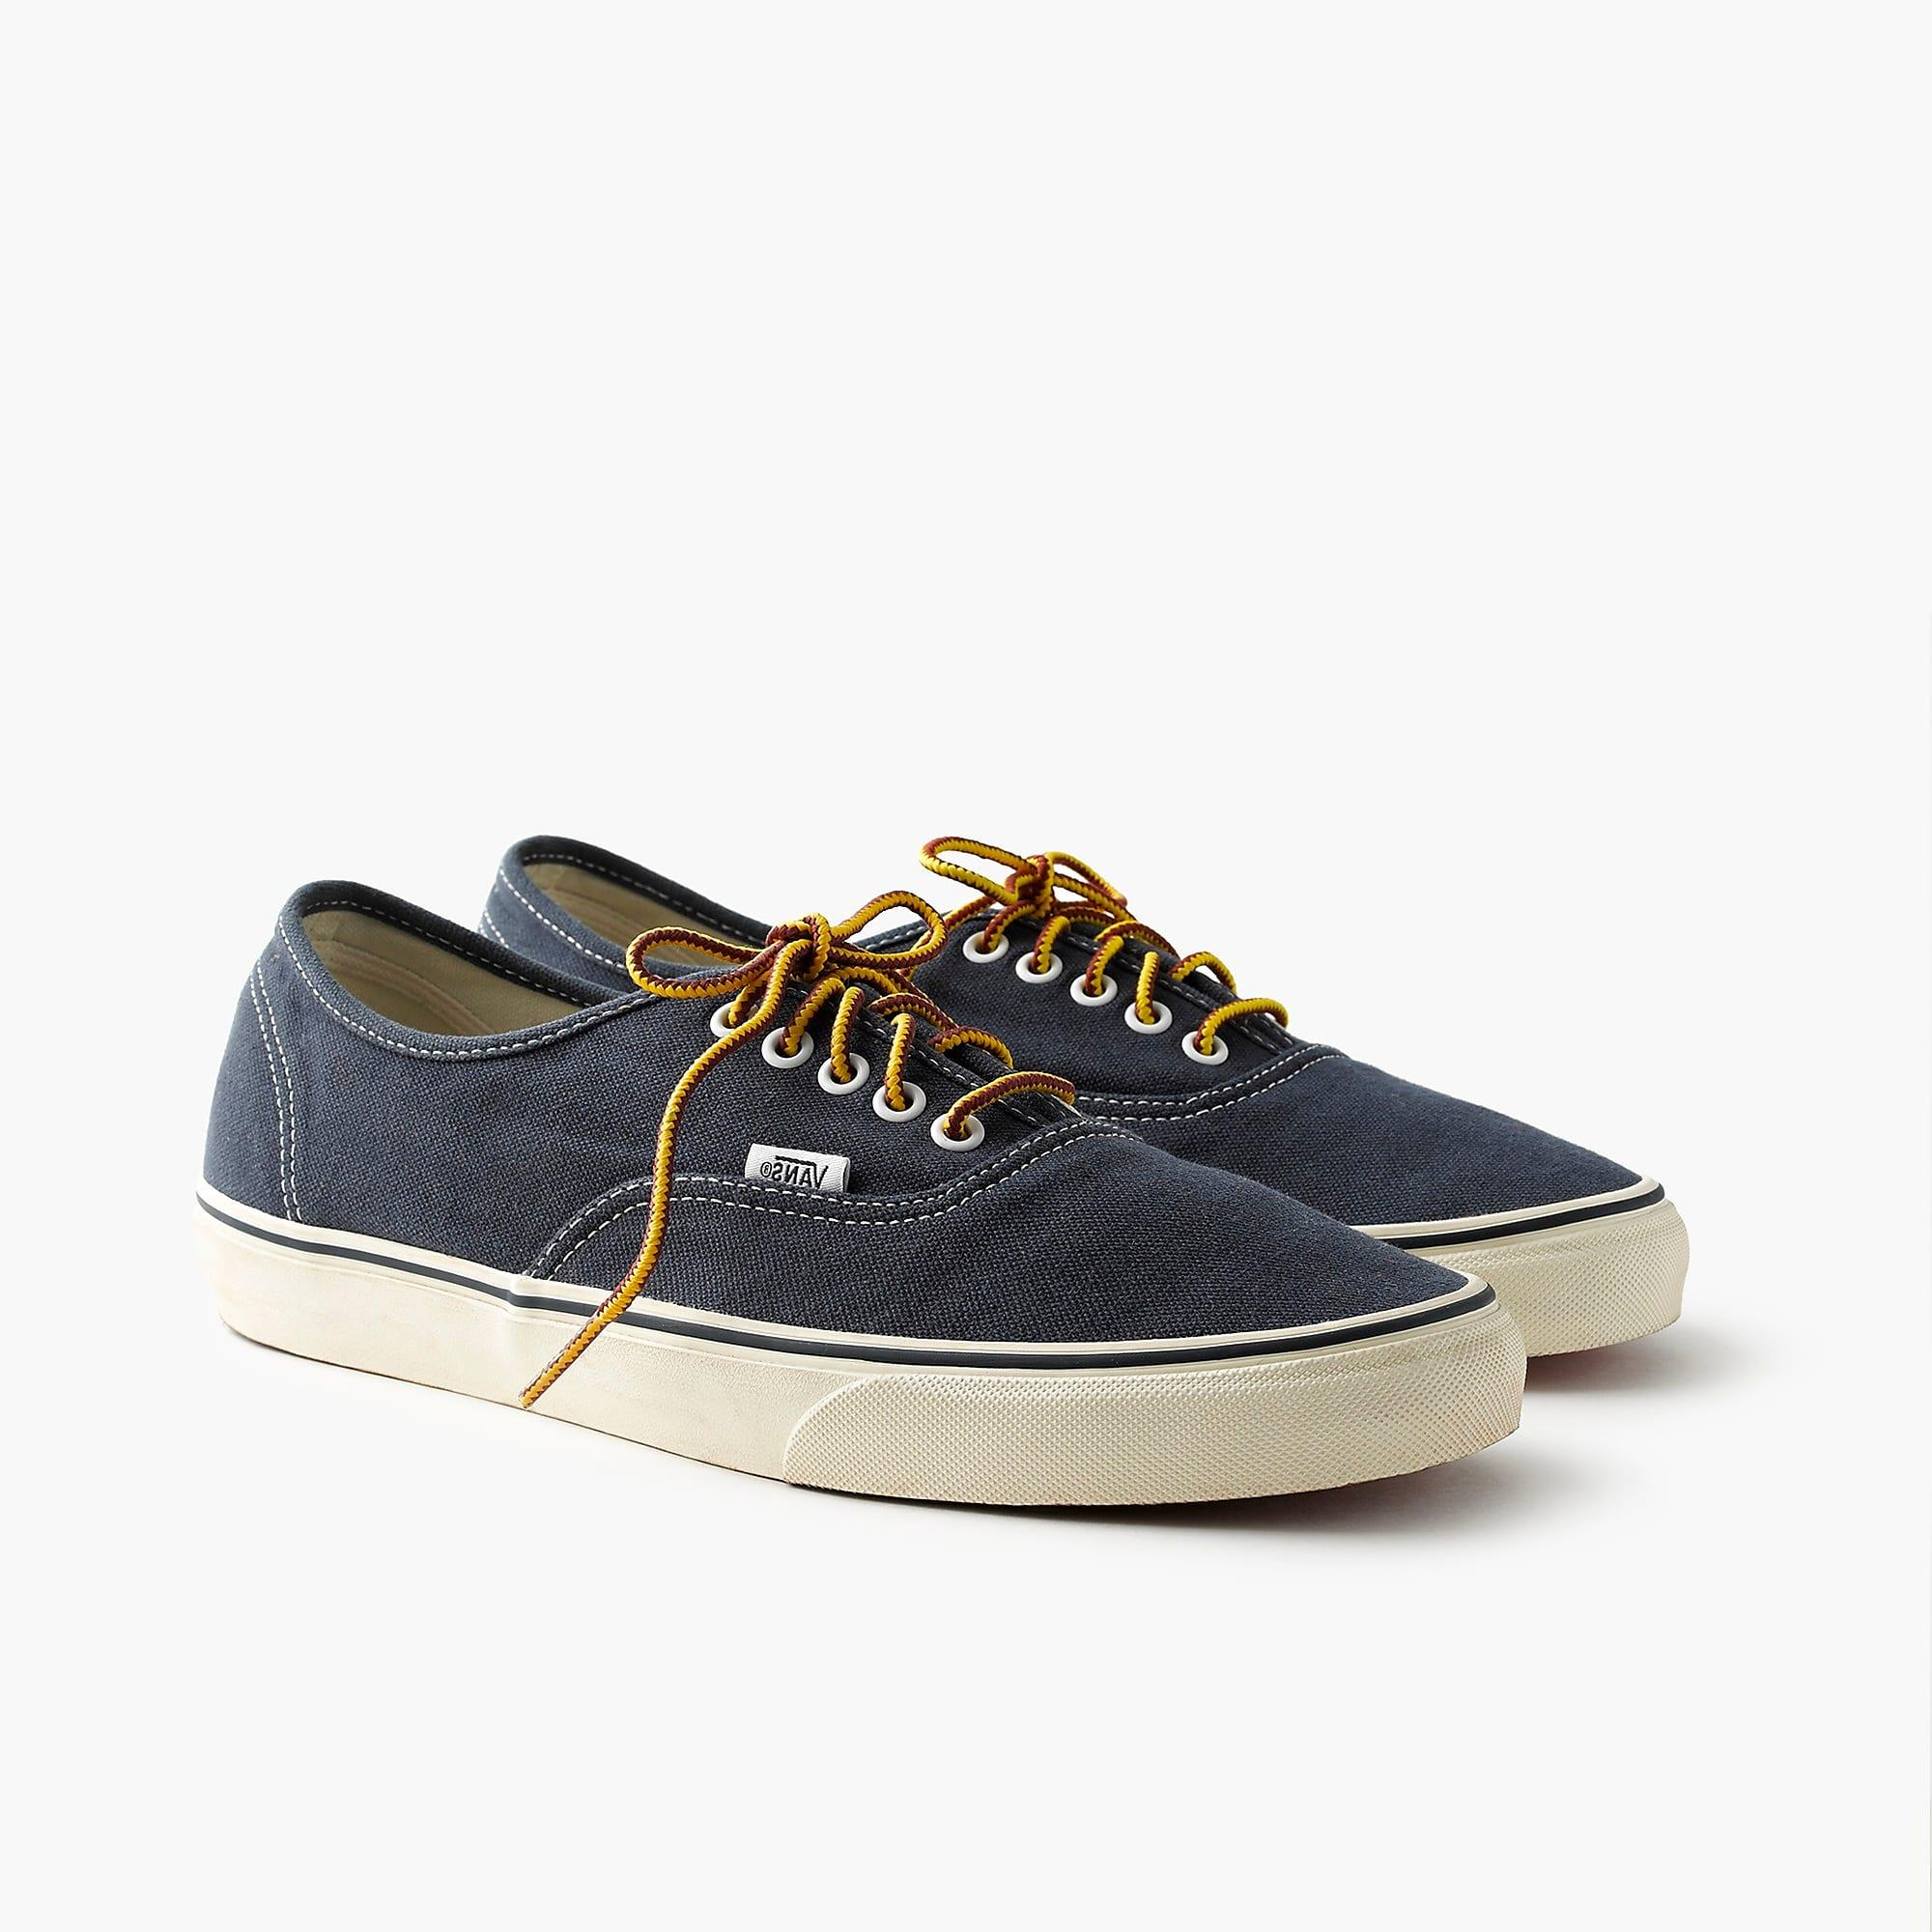 f0fb08ecaf38 Lyst - Vans Washed Canvas Authentic Sneakers in Blue for Men